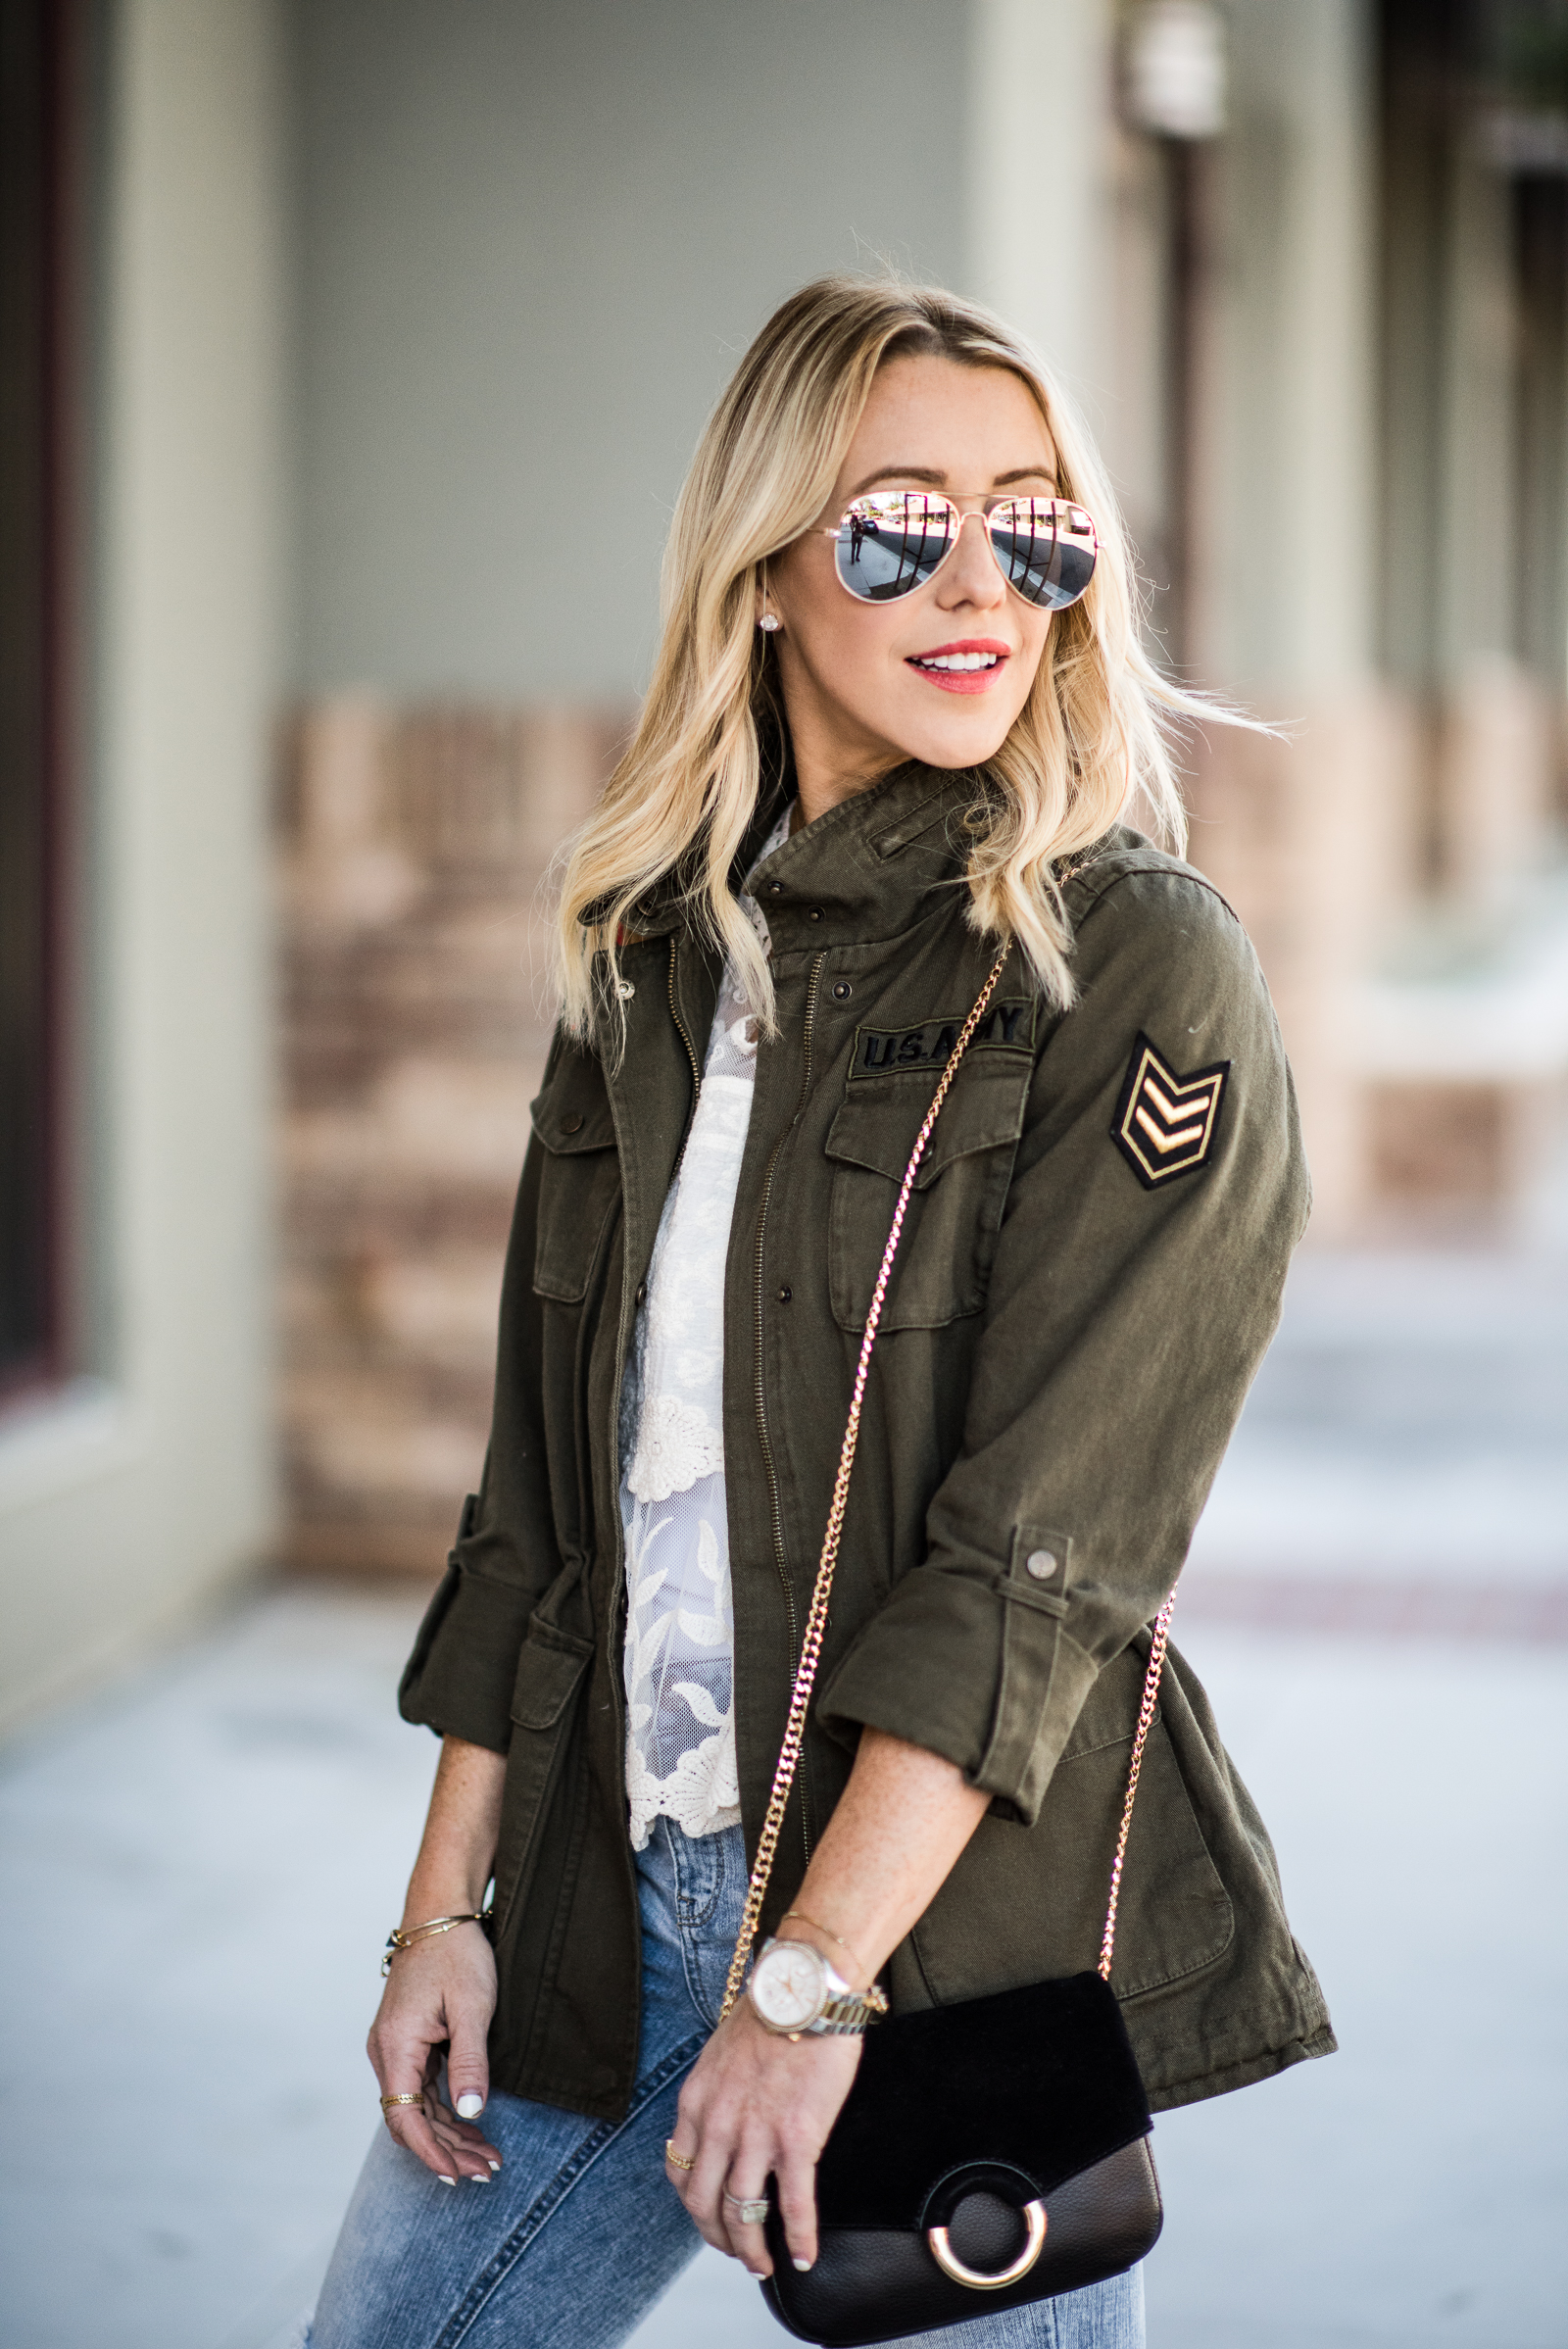 confessions of a style blogger by SF fashion blogger For The Love